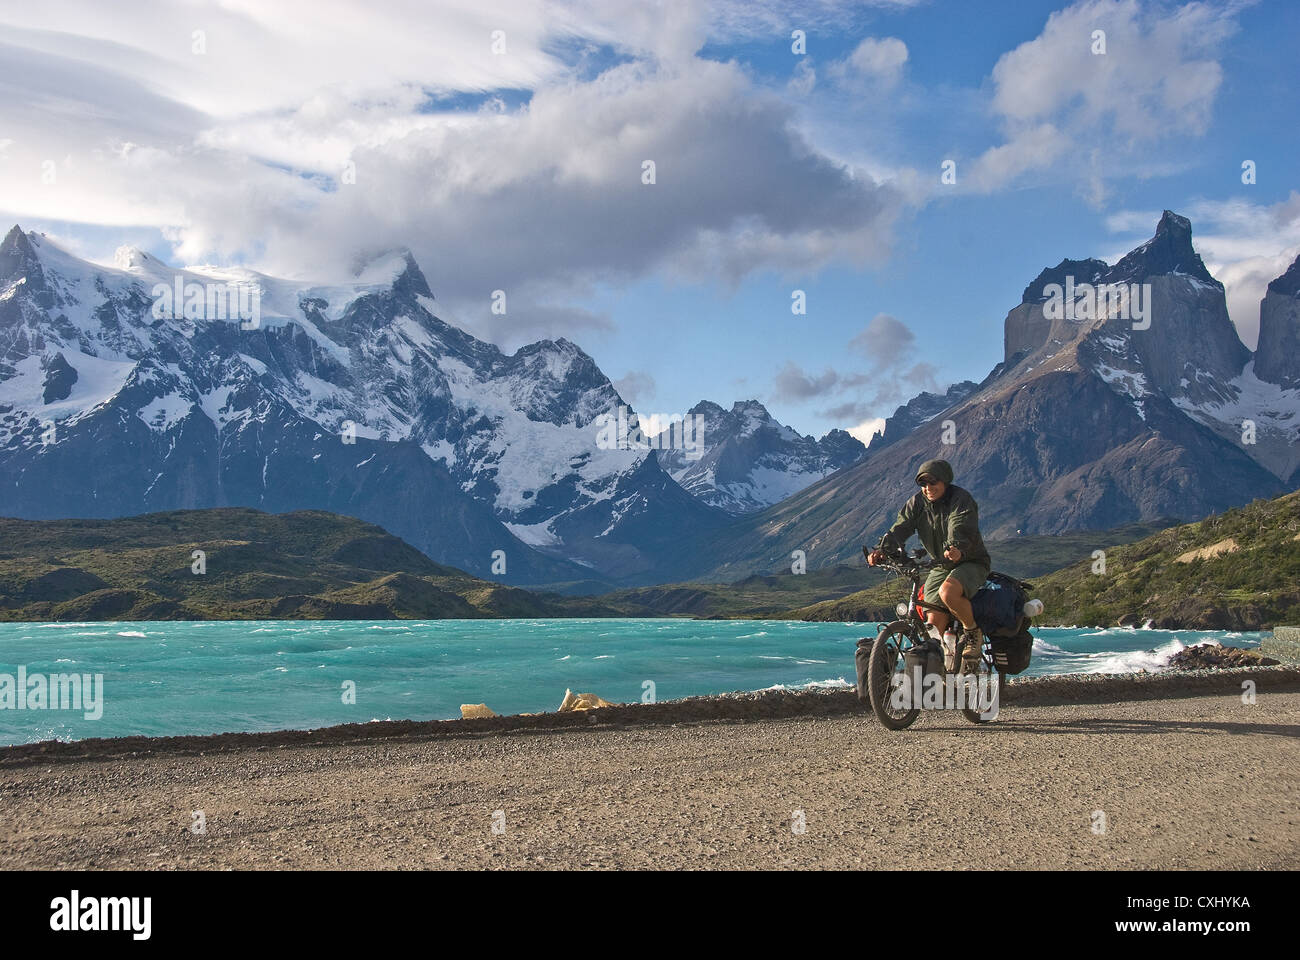 Elk198-4442 Chile, Torres del Paine National Park, Cuernos massif with Lago Pehoe, bicyclist - Stock Image